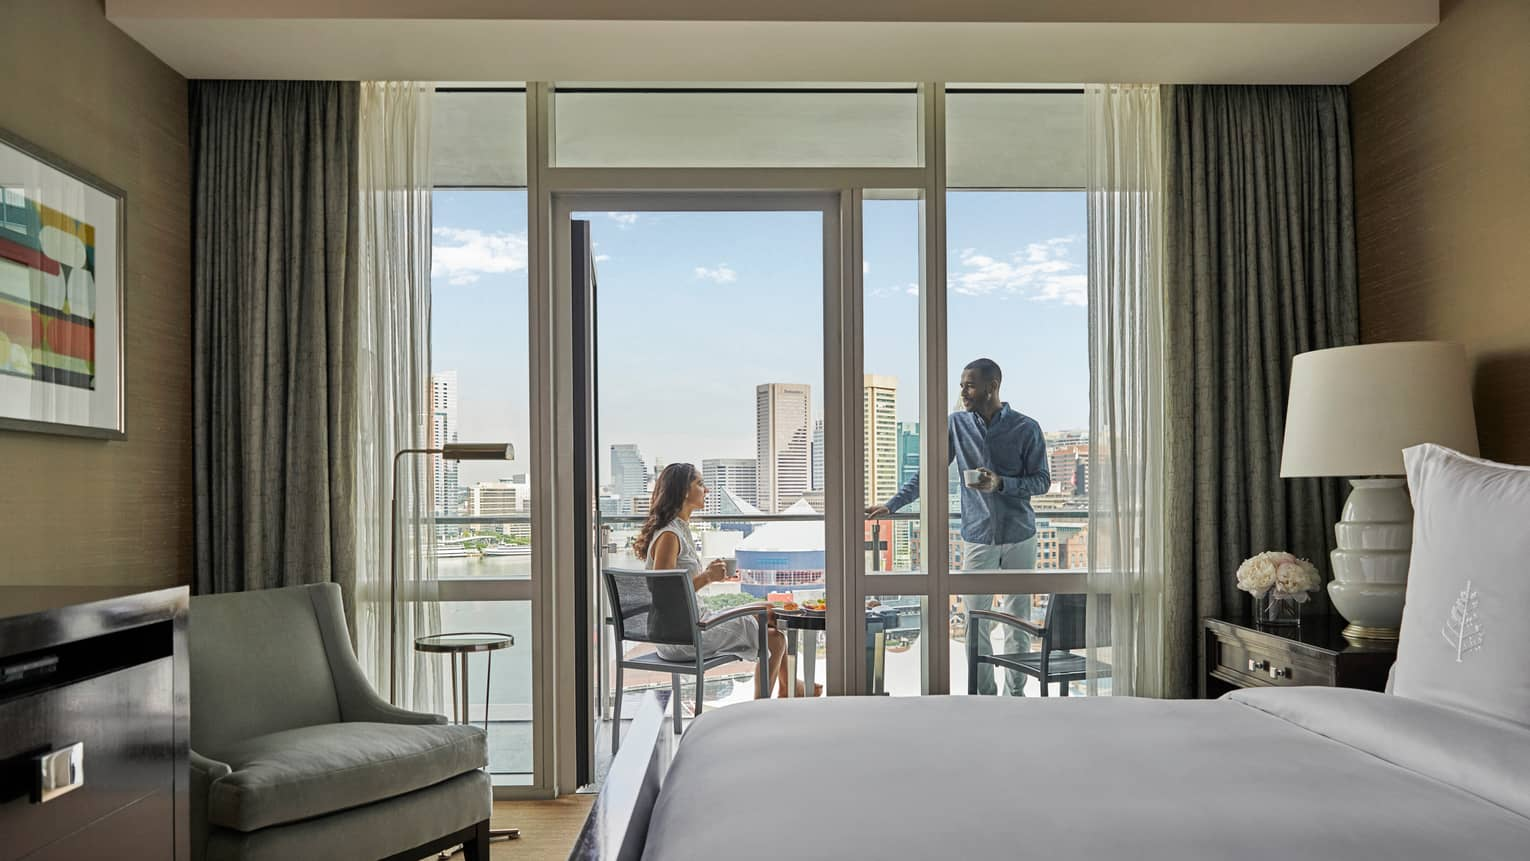 Hotel room with king bed, light grey arm chair, opening to outdoor balcony with two people talking